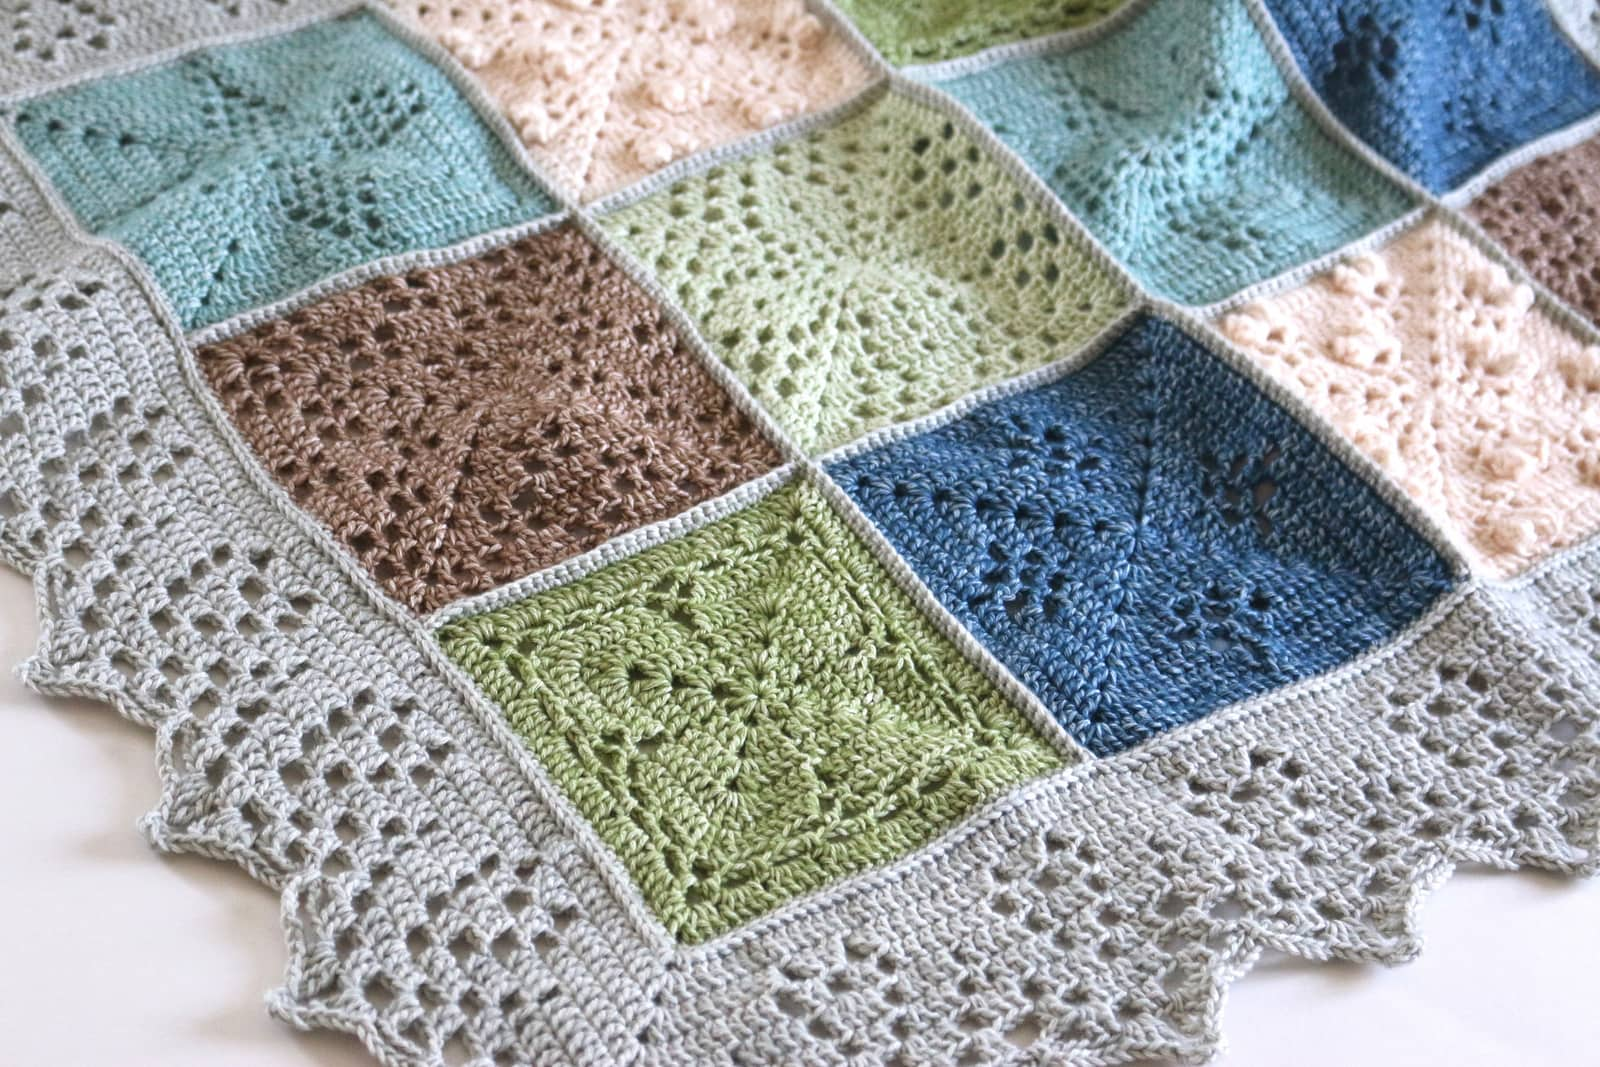 This version uses earthy tones that really match the nature theme of the crochet pattern